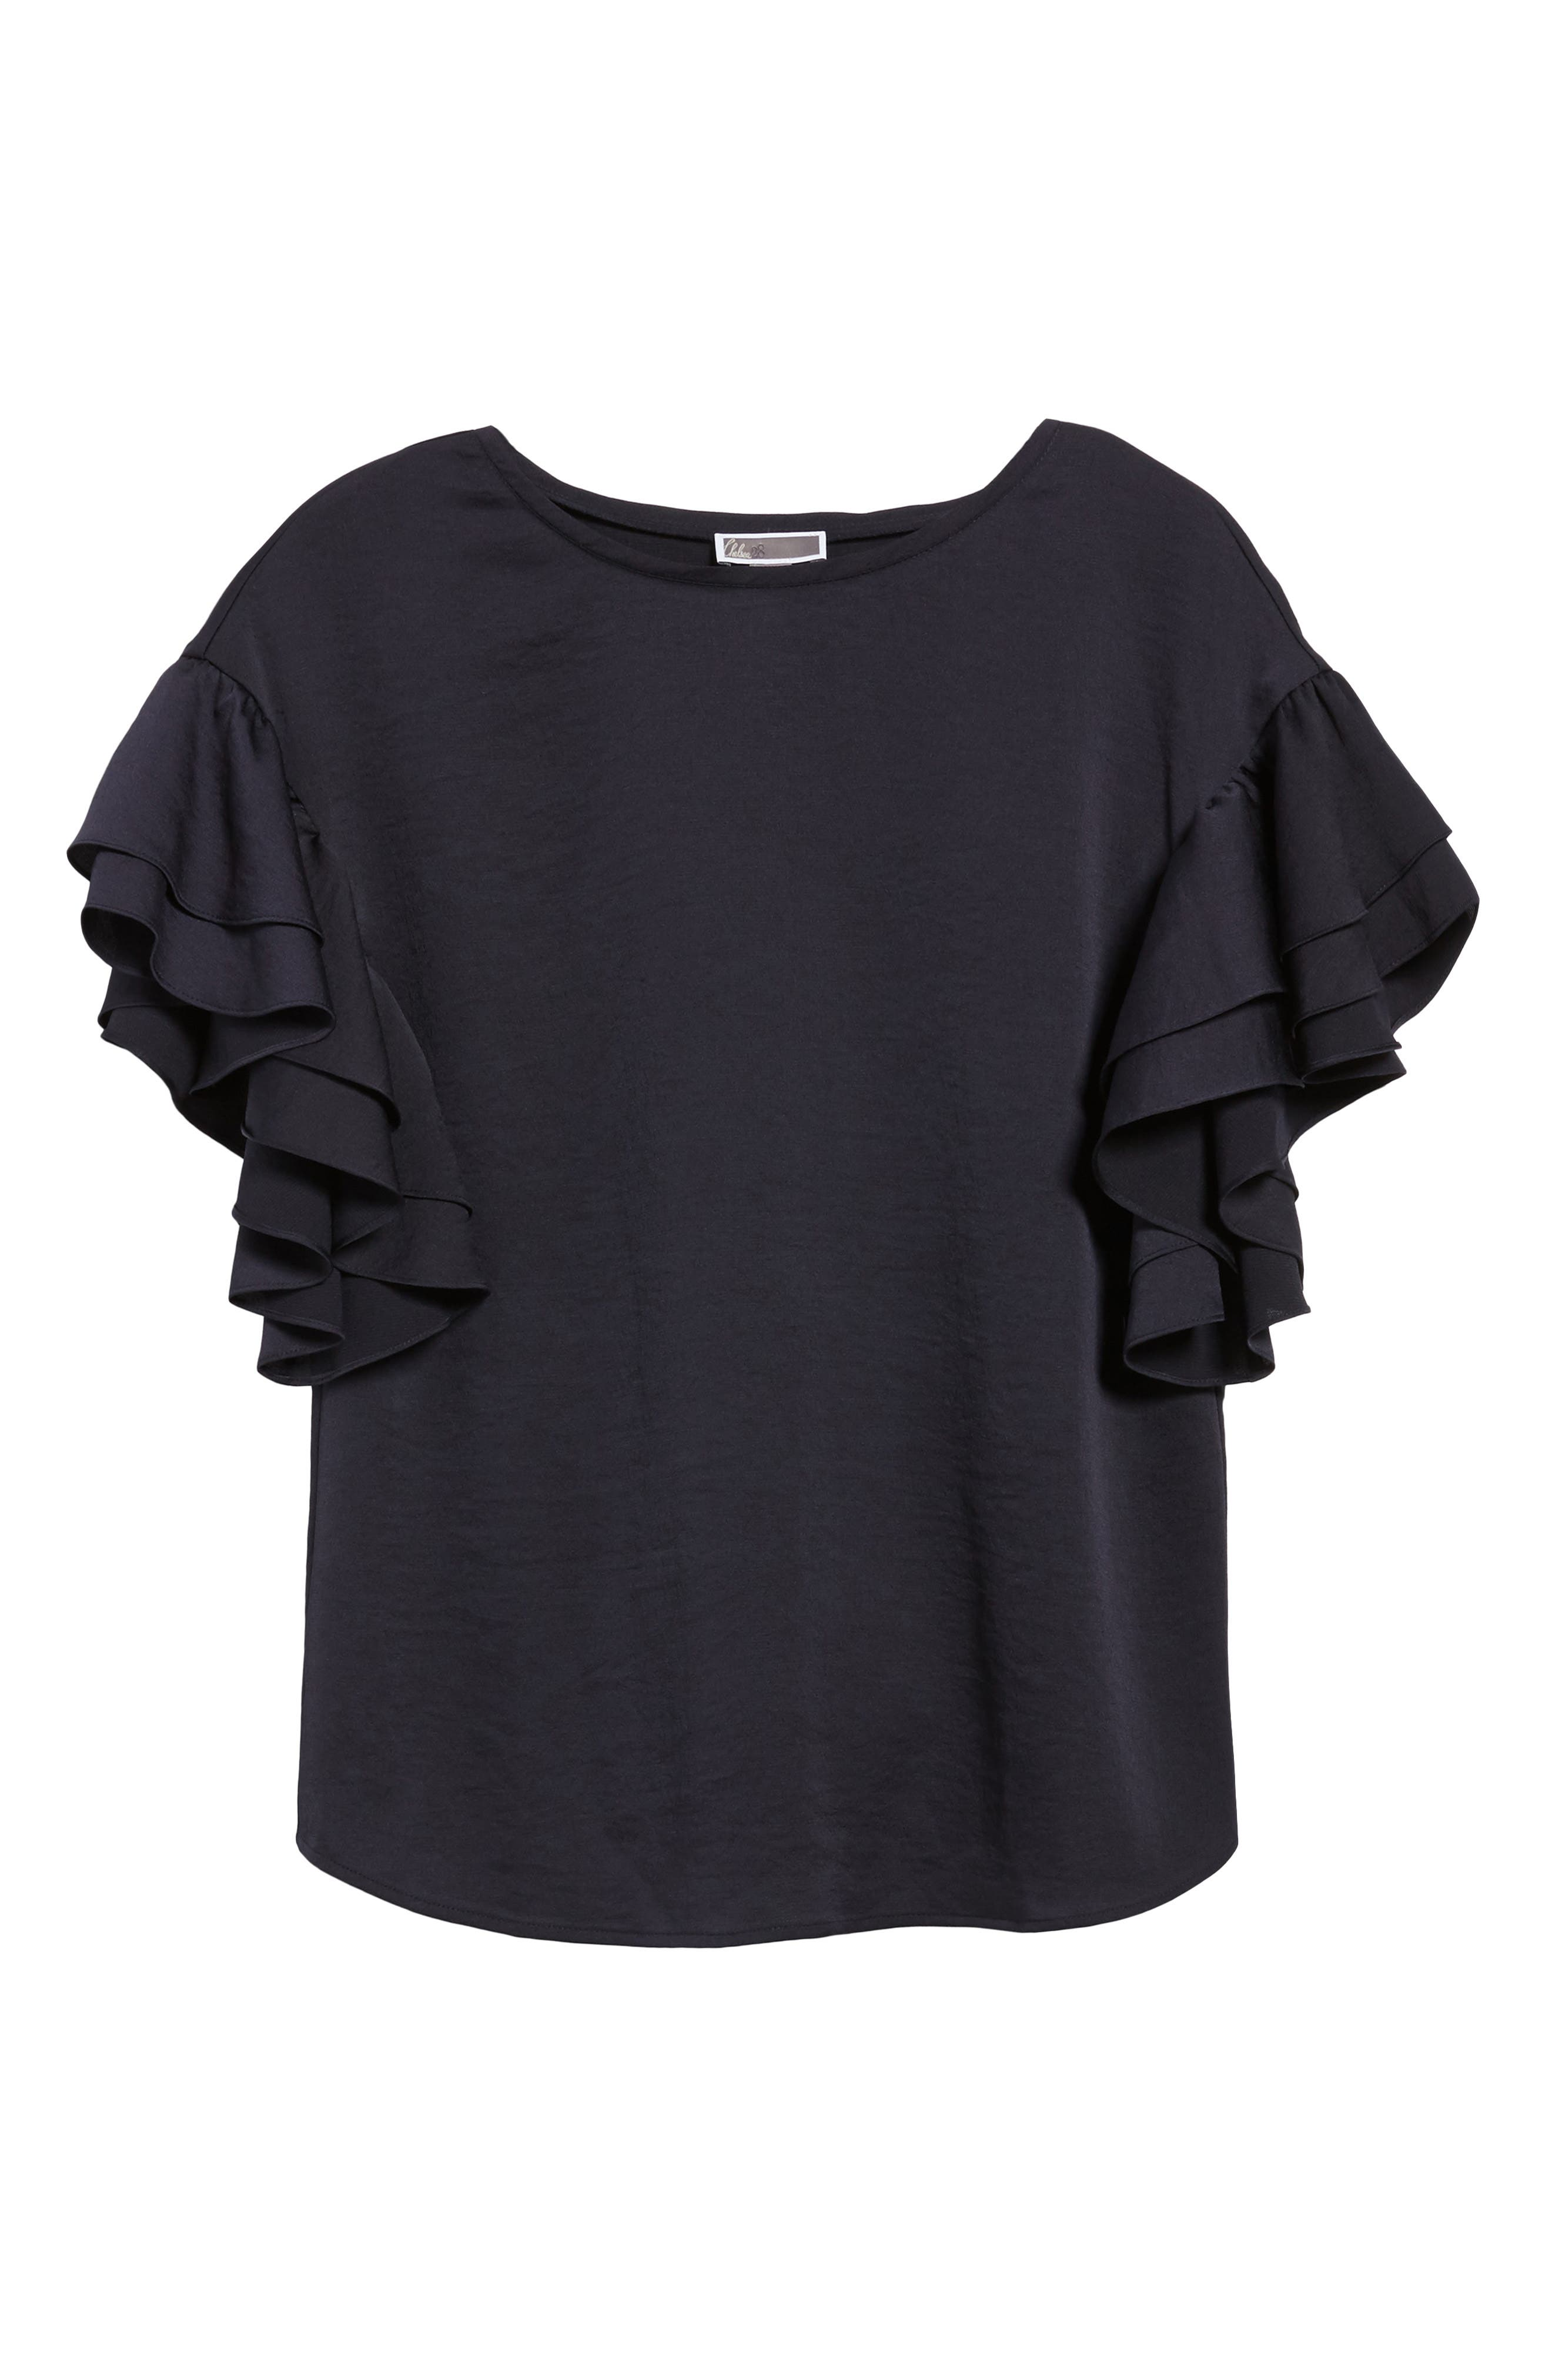 Ruffle Sleeve Top,                             Alternate thumbnail 6, color,                             Navy Well